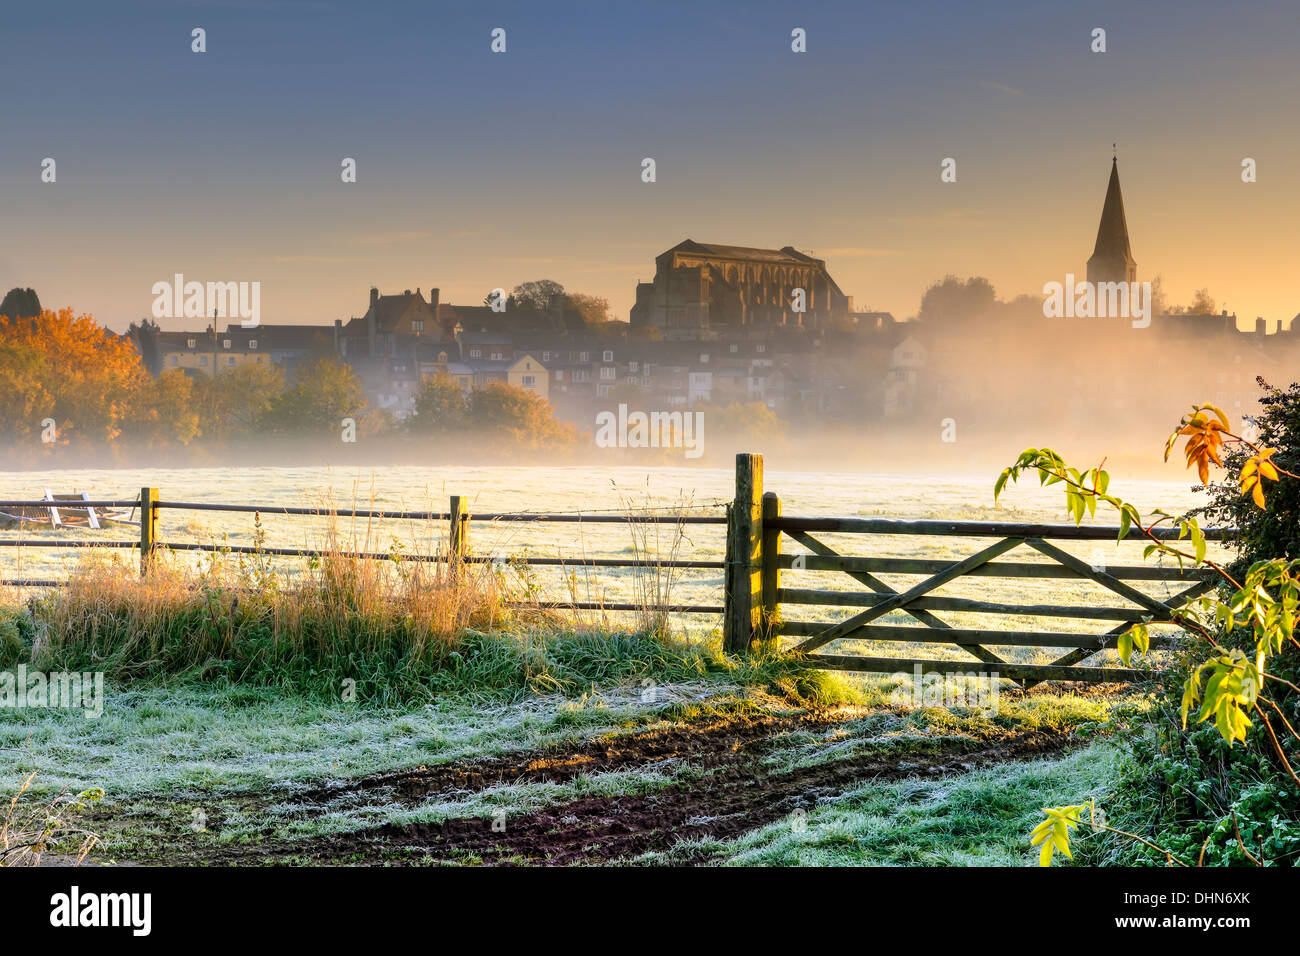 Sunrise over the Wiltshire hillside town of Malmesbury lights up the first frost in early November. Stock Photo